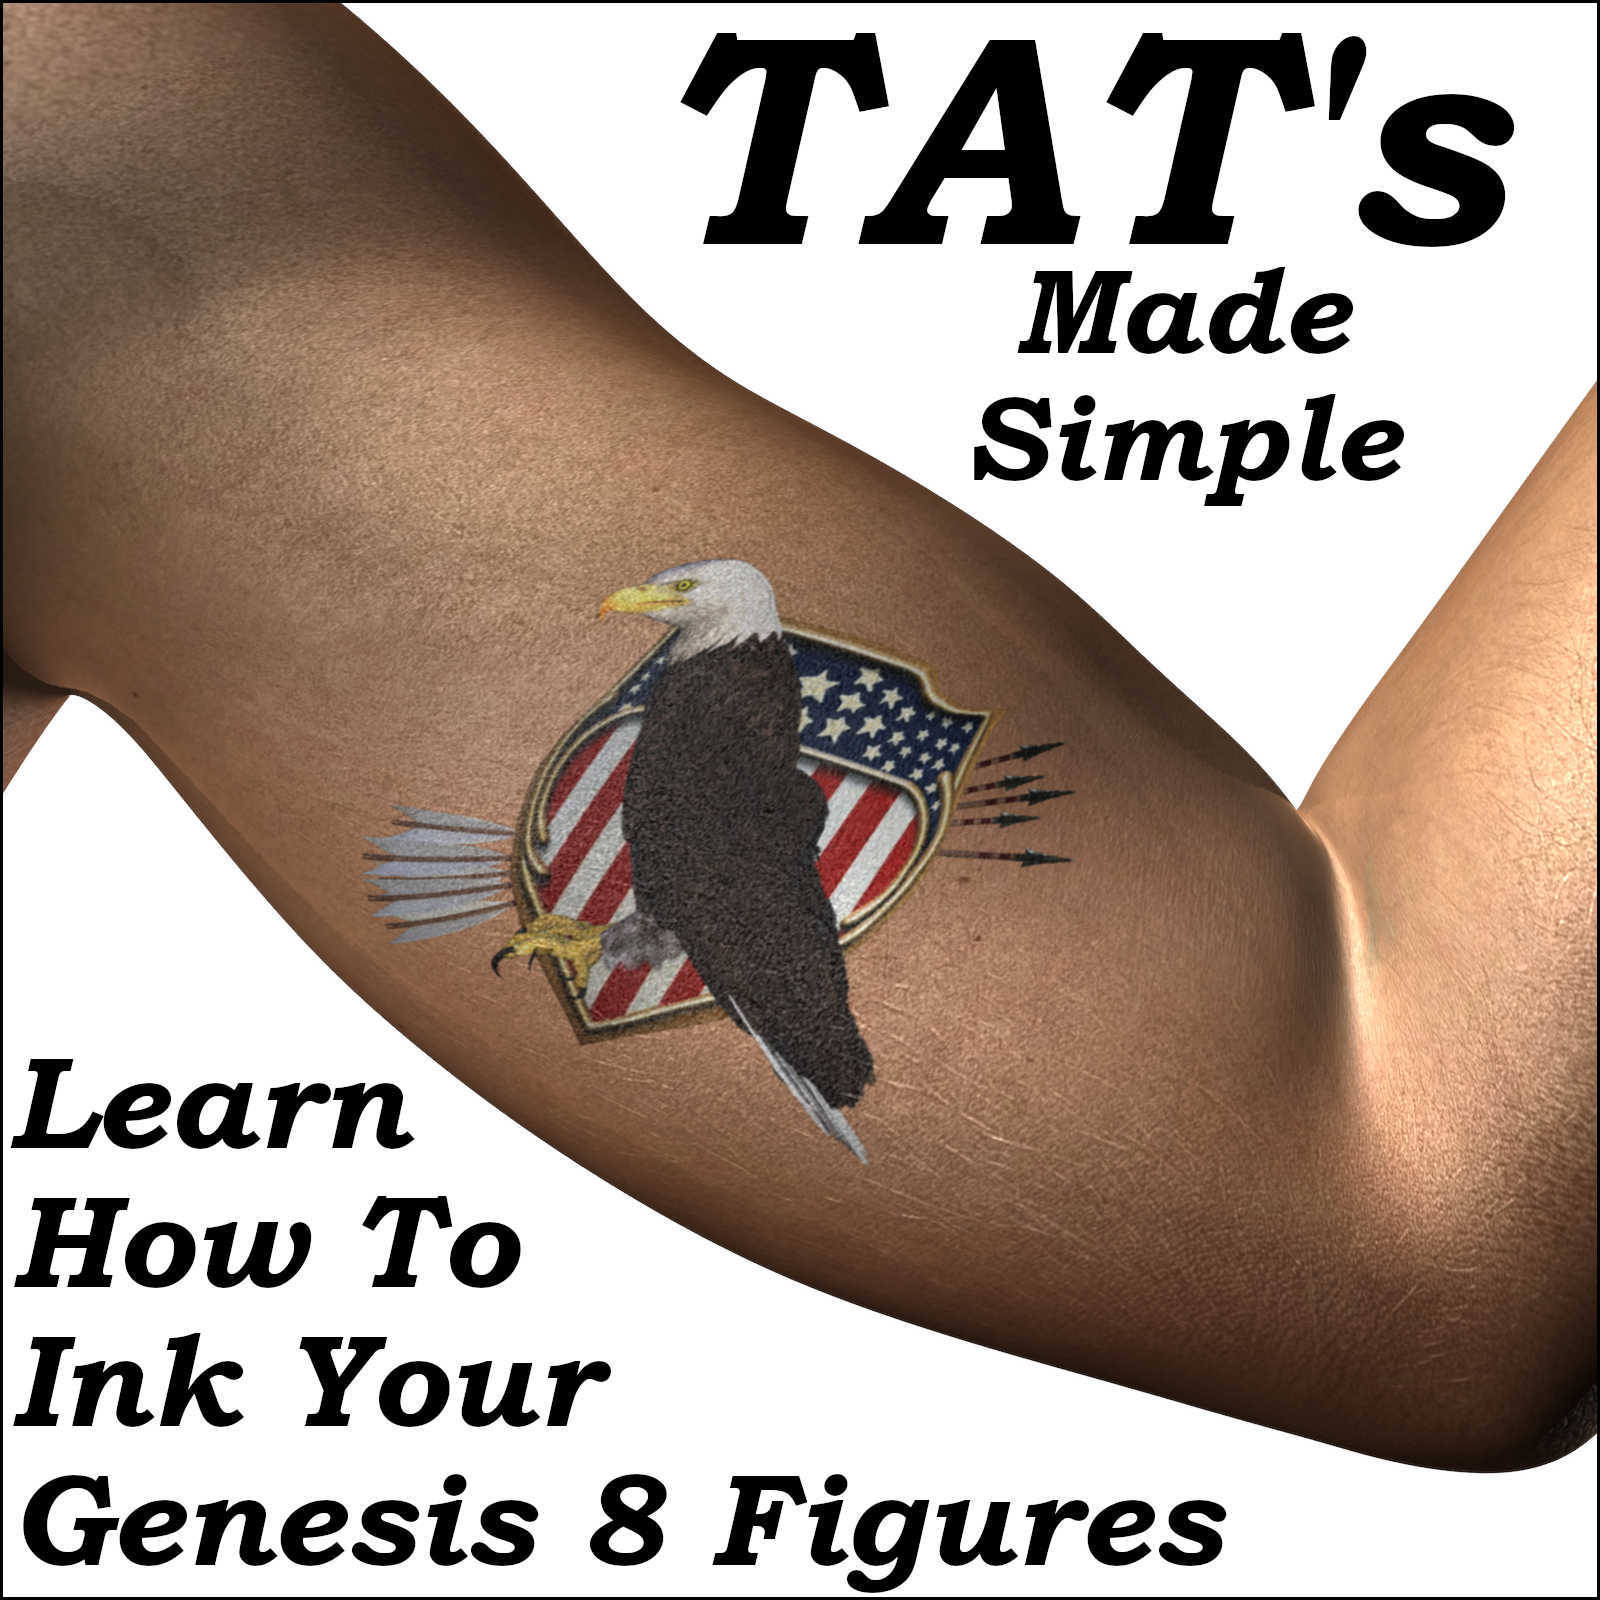 TATS Made Simple, Genesis 8 Figures Get Inked - G8F, G8M, Characters by Winterbrose